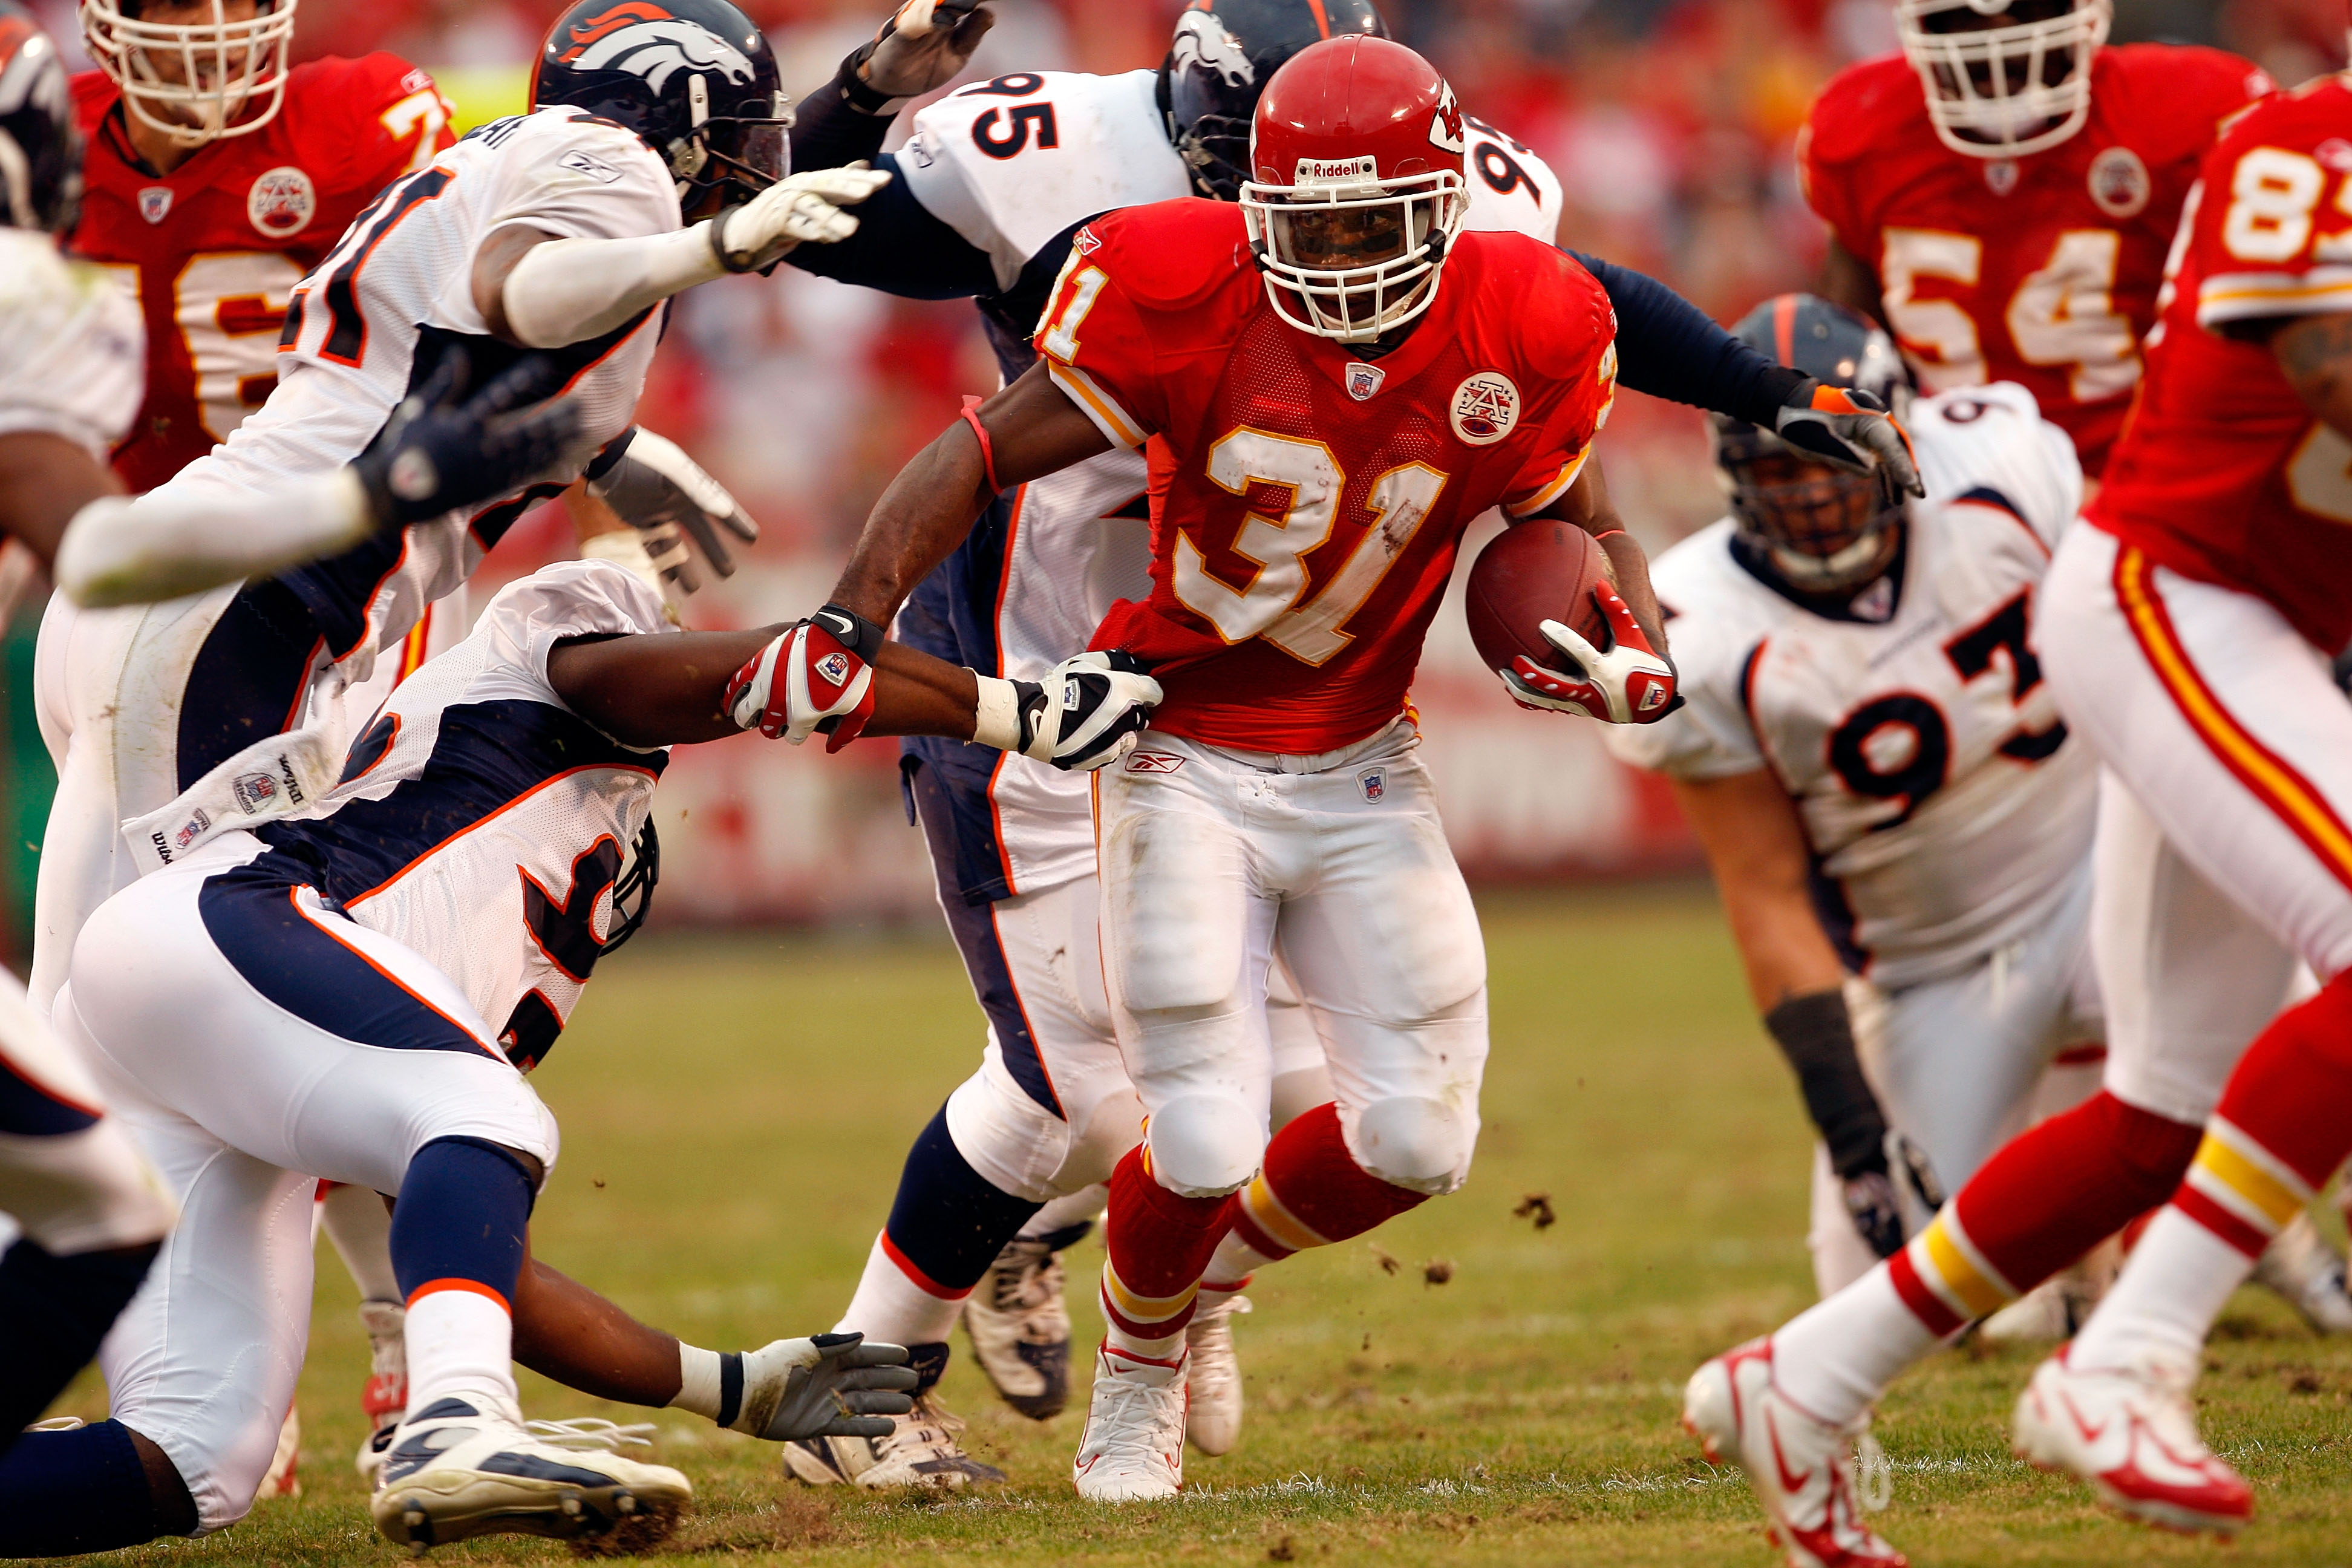 Chiefs: Kansas City Chiefs: All-Time Leaders In Rushing Touchdowns